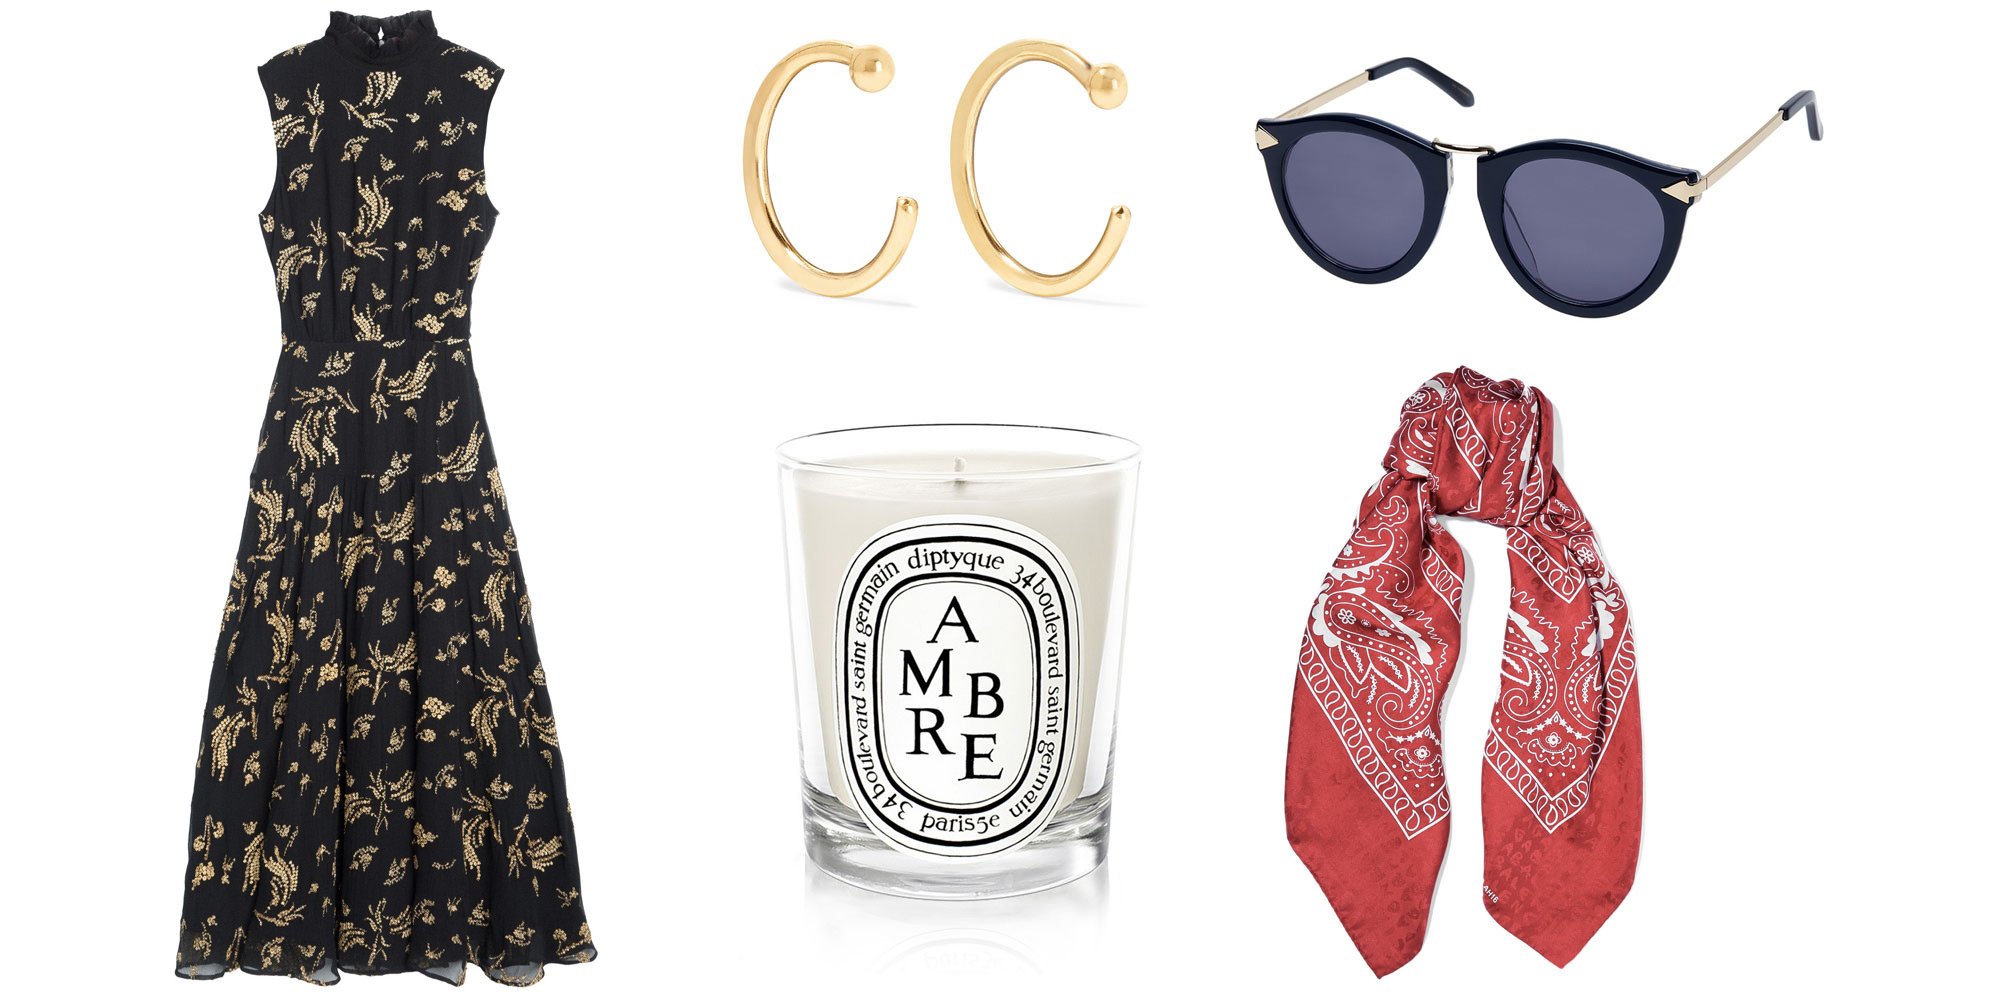 25 Gifts For Your Wife In 2016